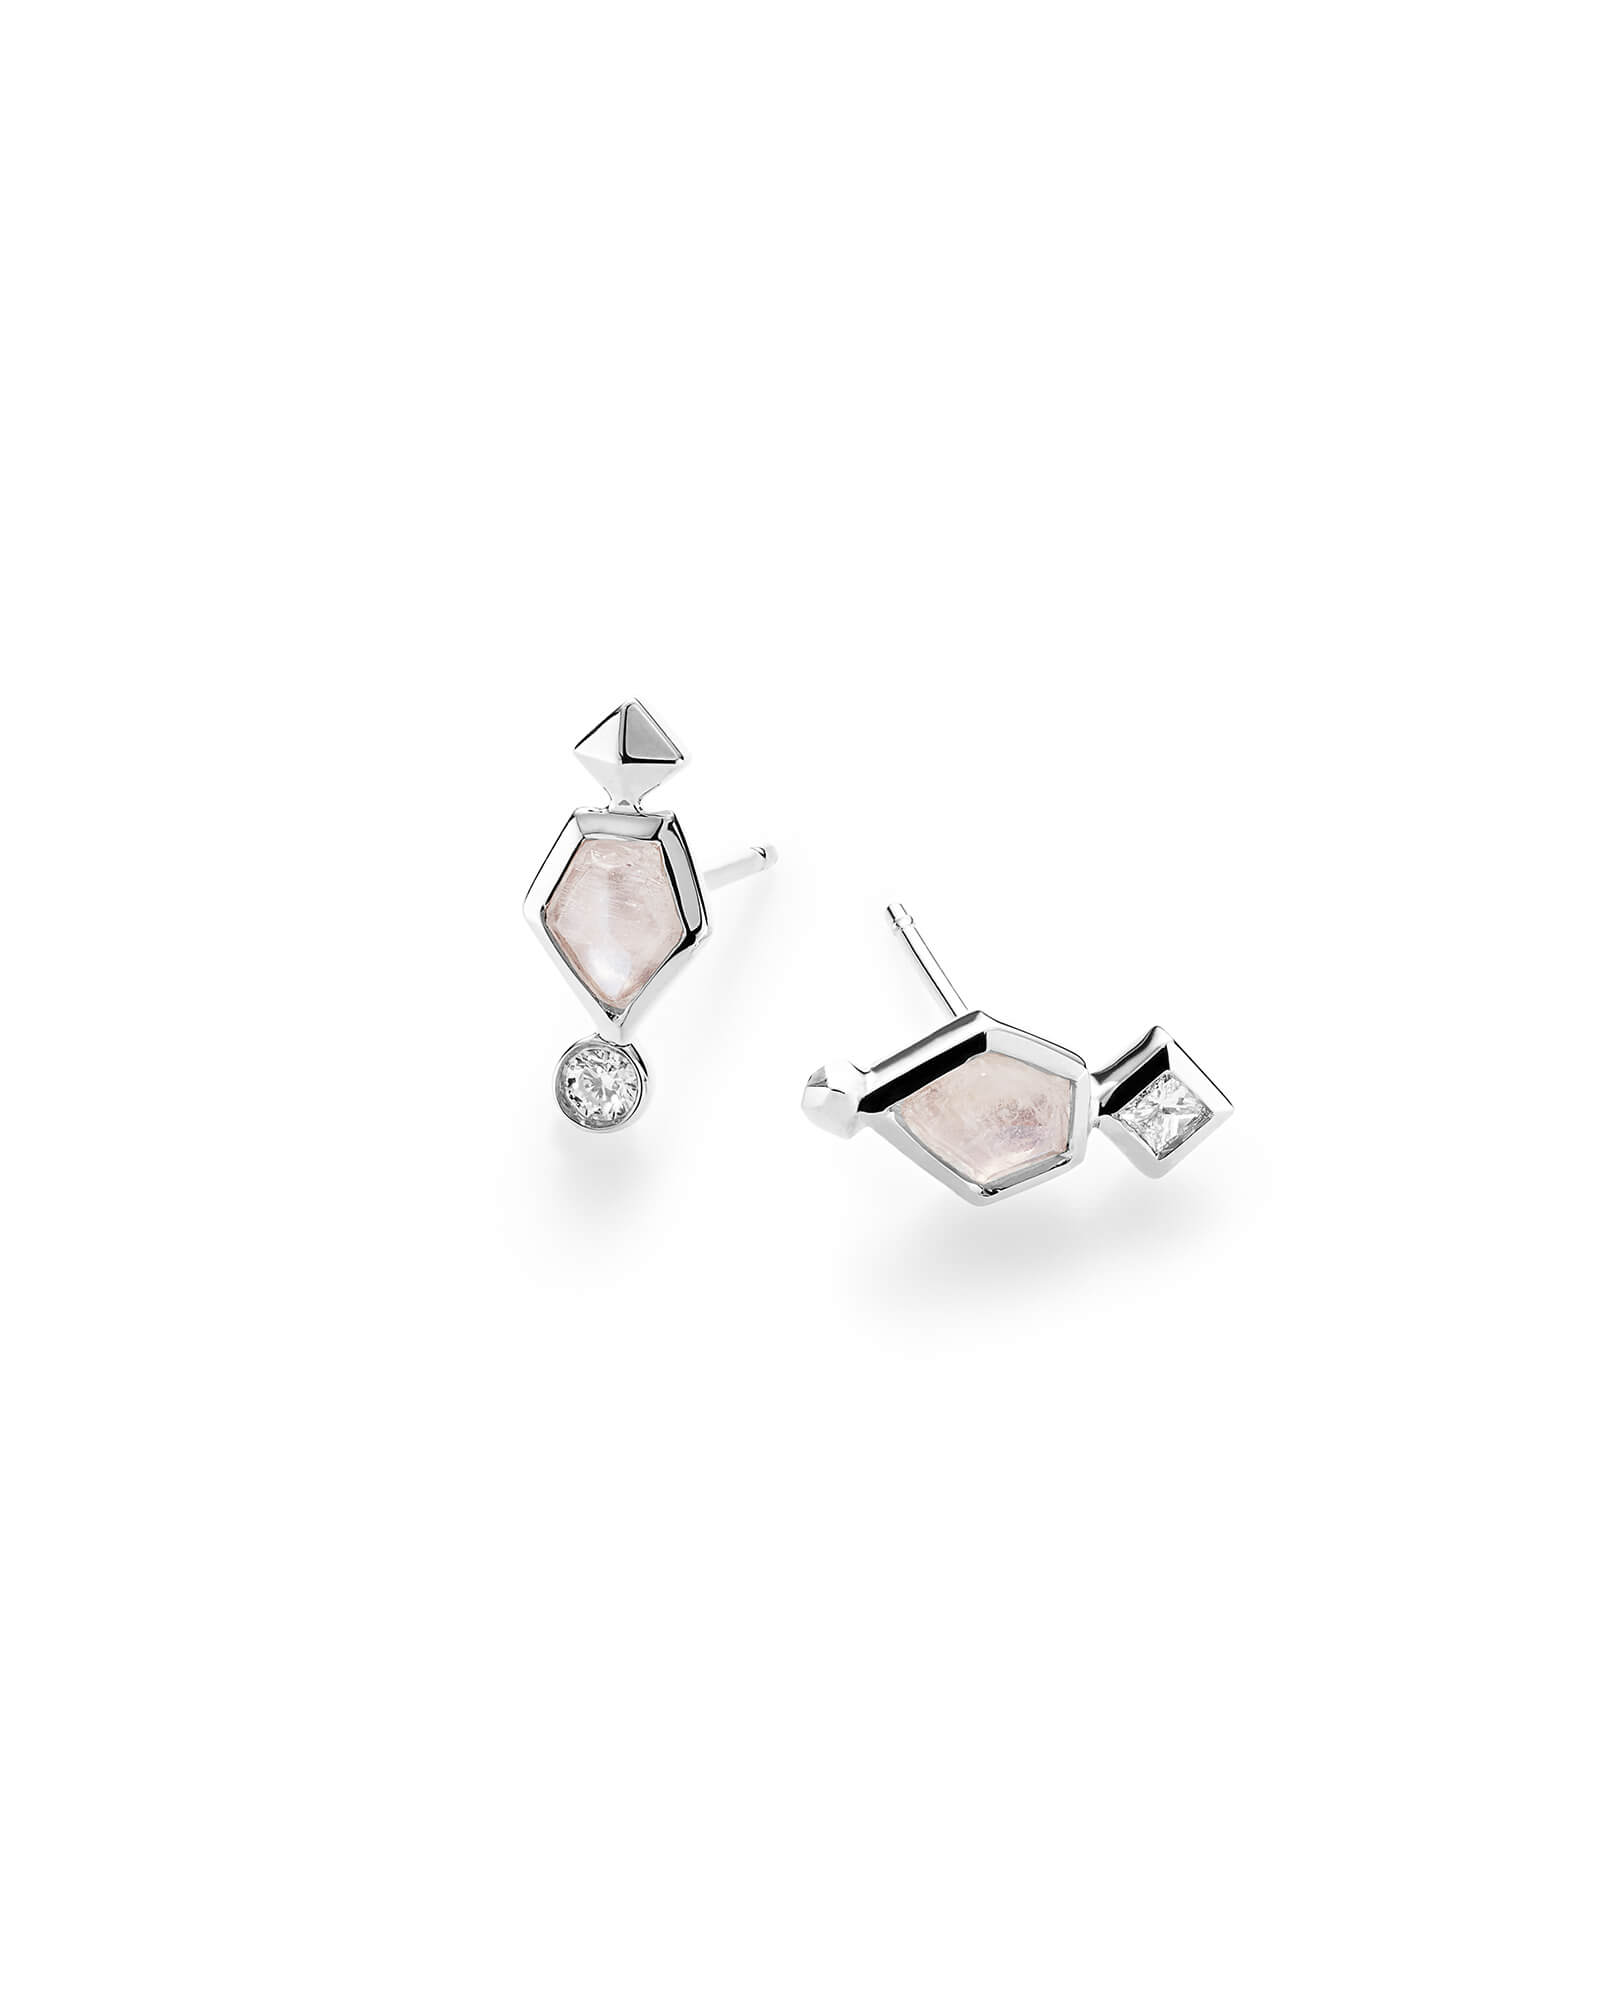 Bonnie Stud Earrings in Rainbow Moonstone and 14k White Gold